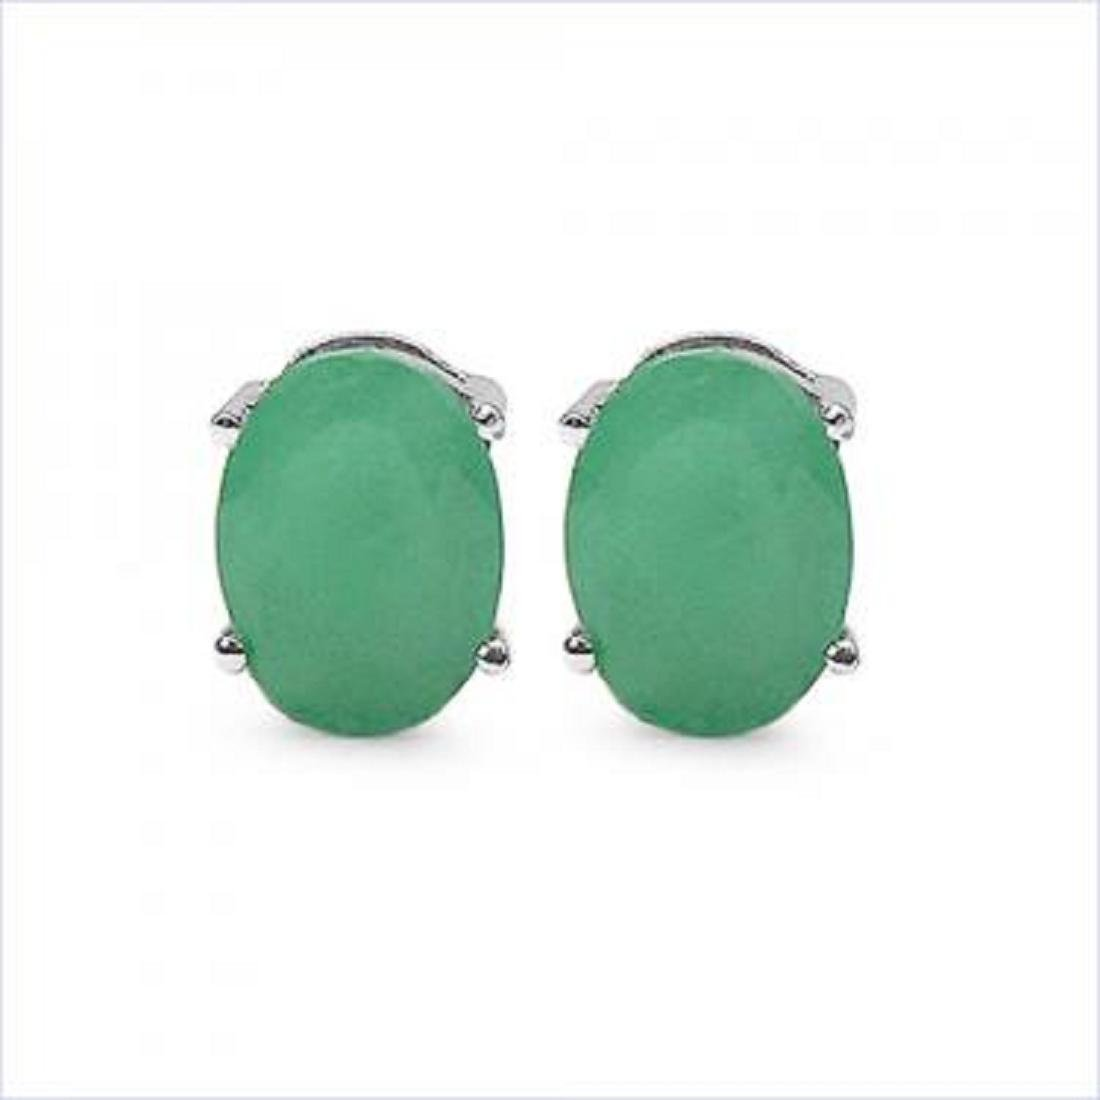 3 CT Green Agate Stud Earrings